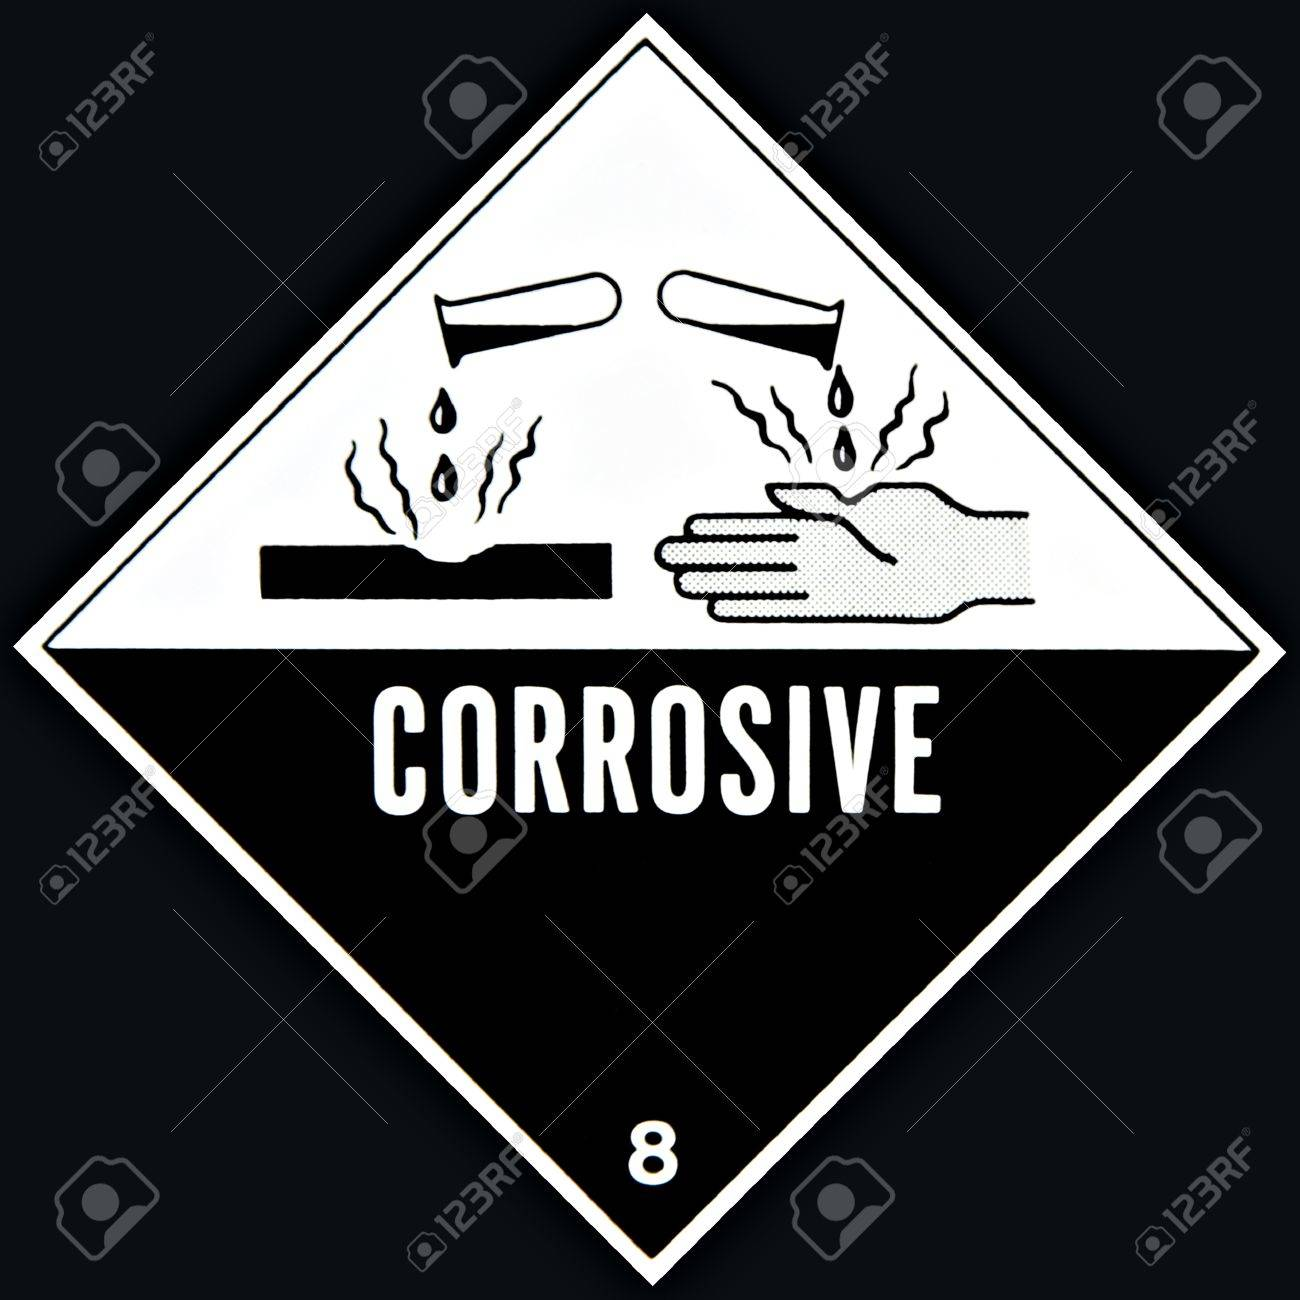 Placard Or Sign Warning Of A Corrosive Chemical Stock Photo Picture